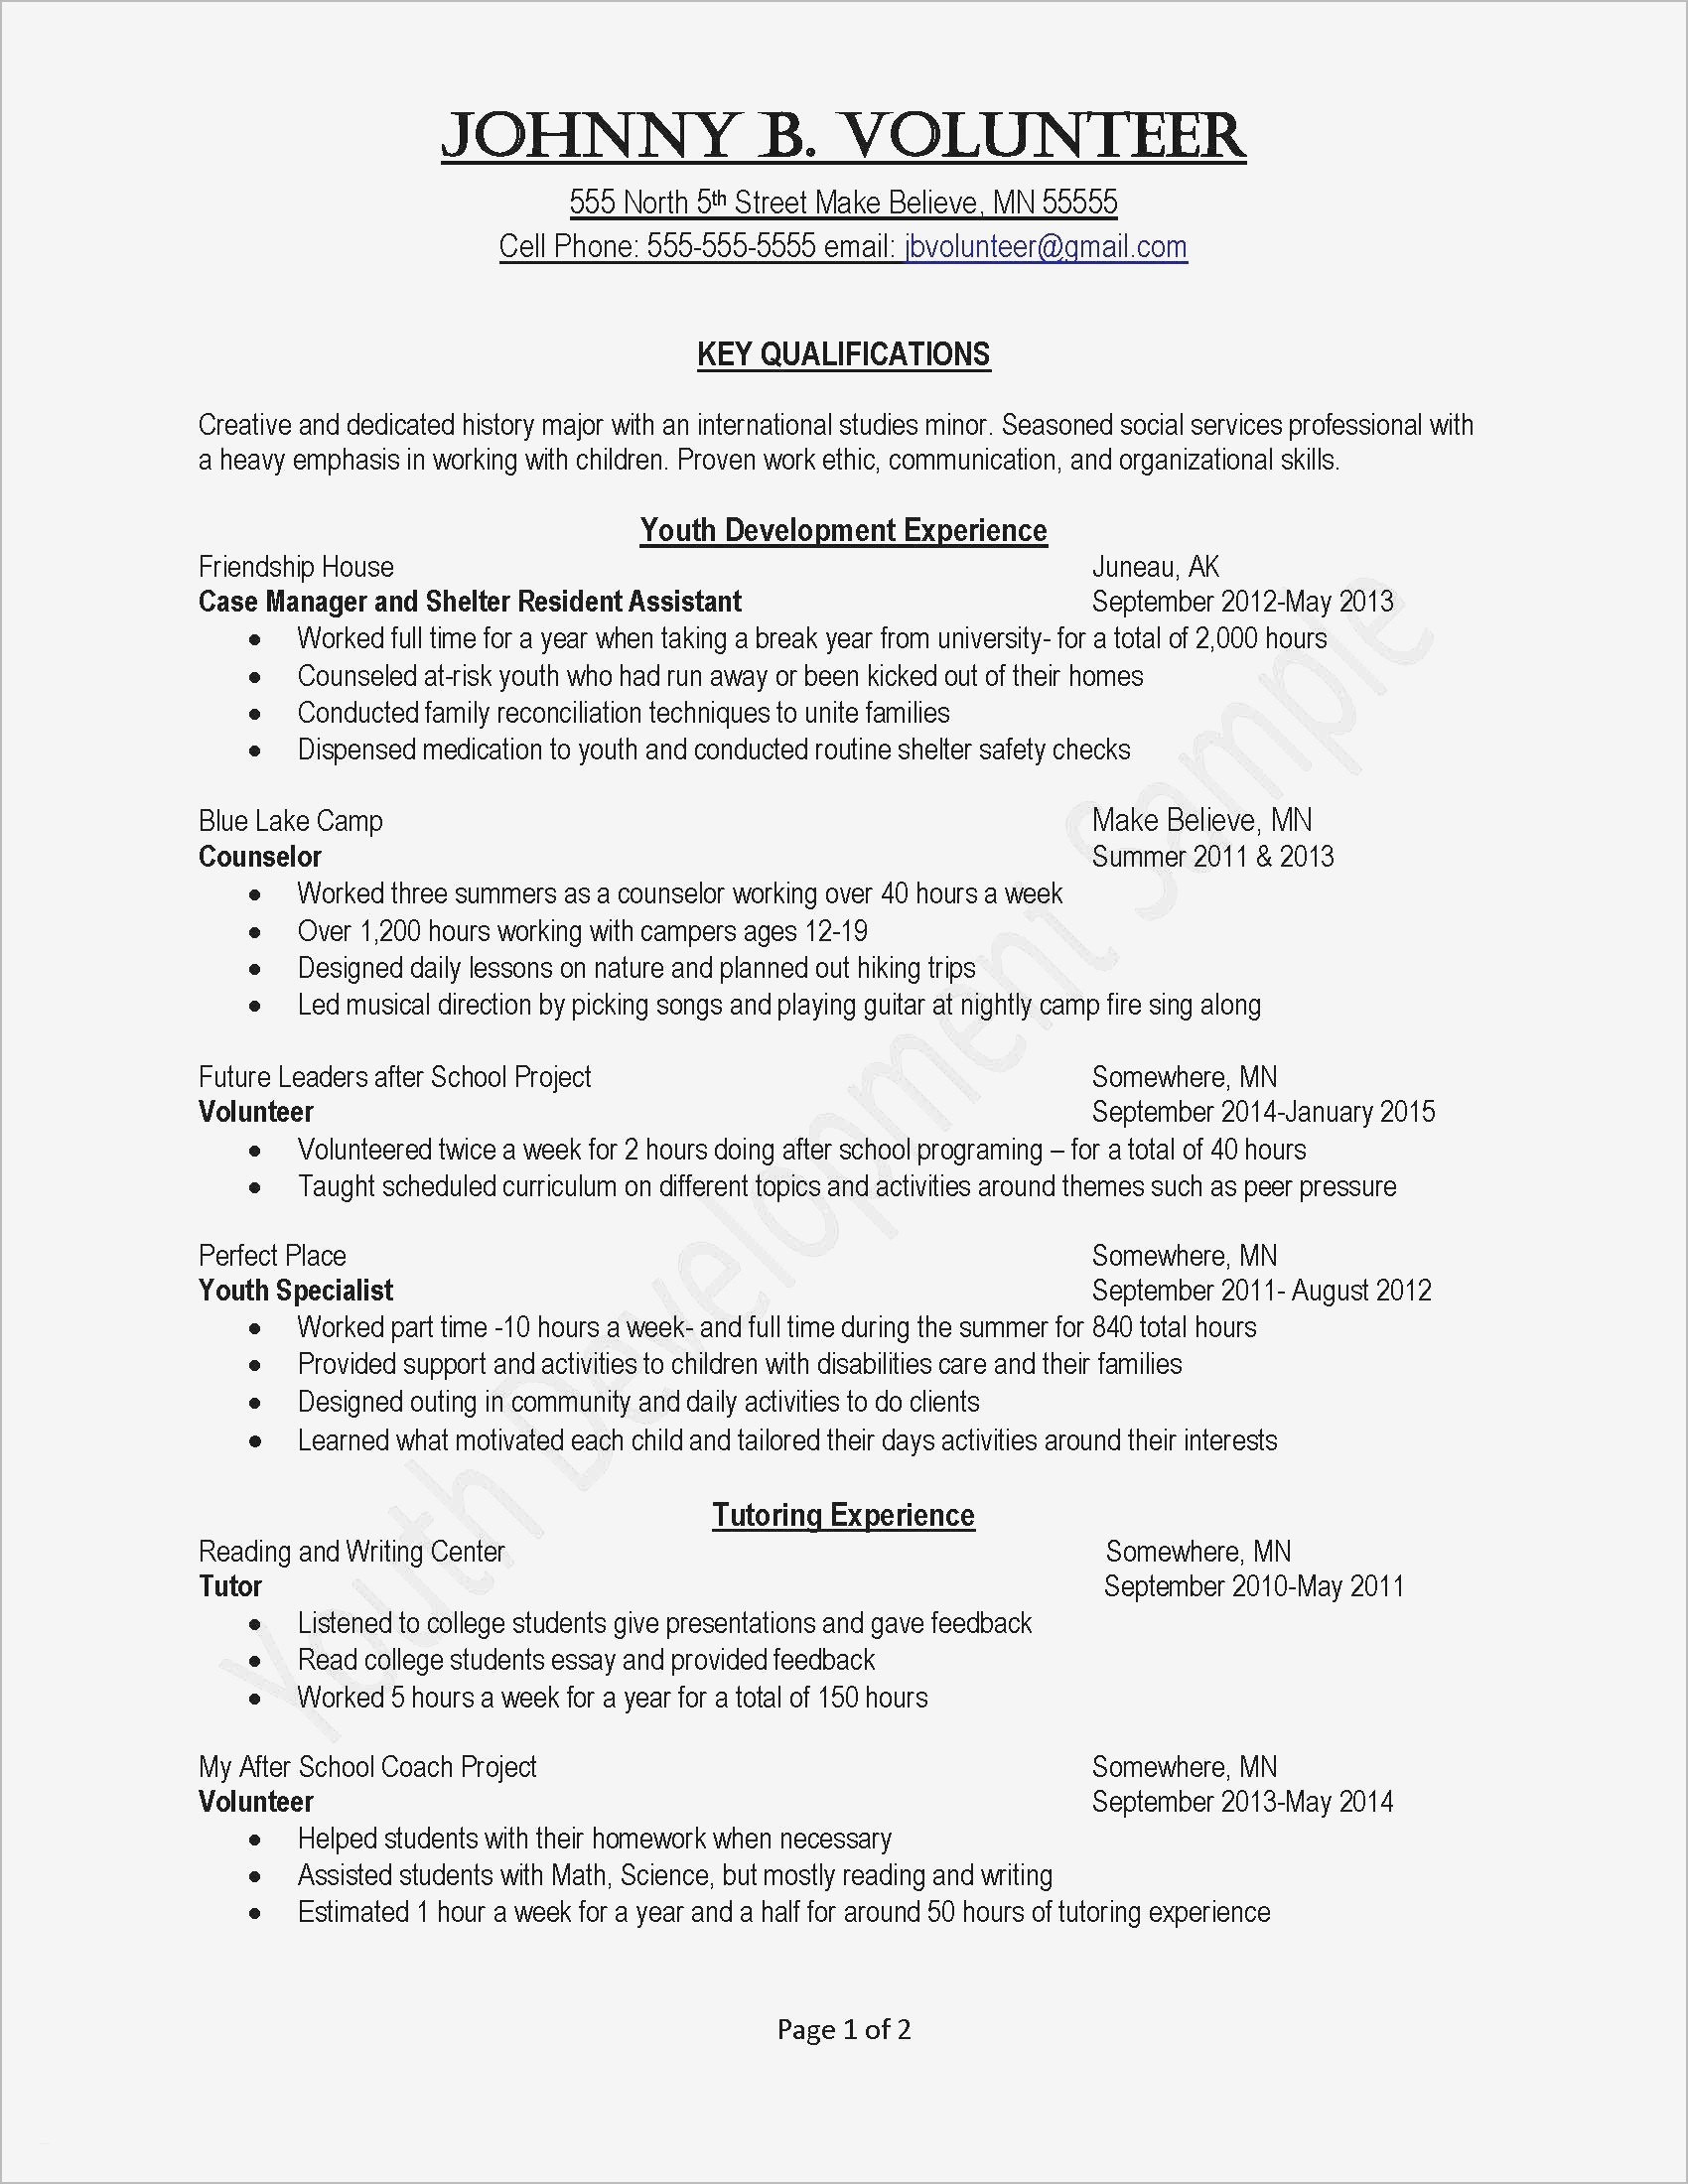 Free Past Due Letter Template - Free Resume Website Template Valid Job Fer Letter Template Us Copy